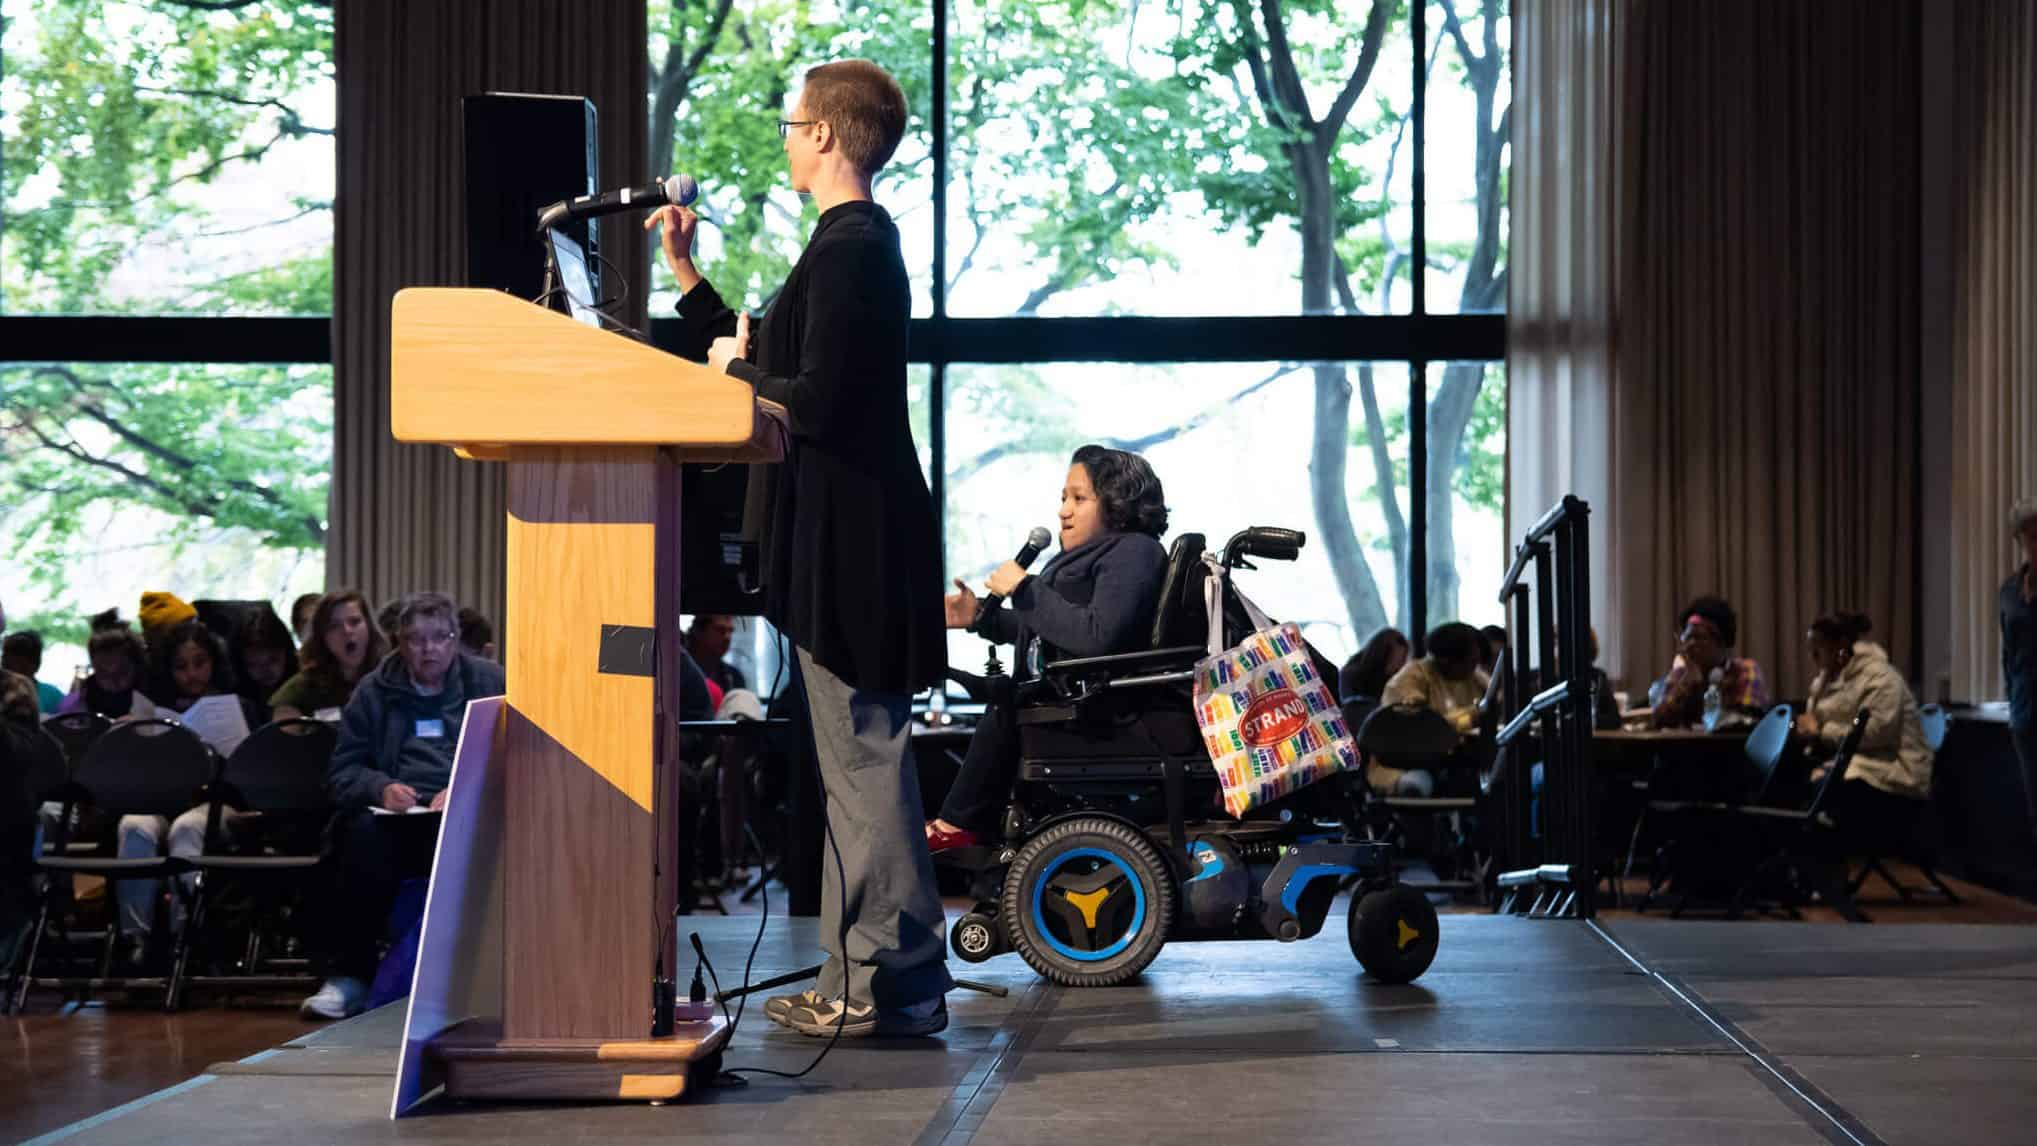 Laura Kiesel sits in her power chair and speaks into a microphone, next to another speaker on a stage in front of an audience.